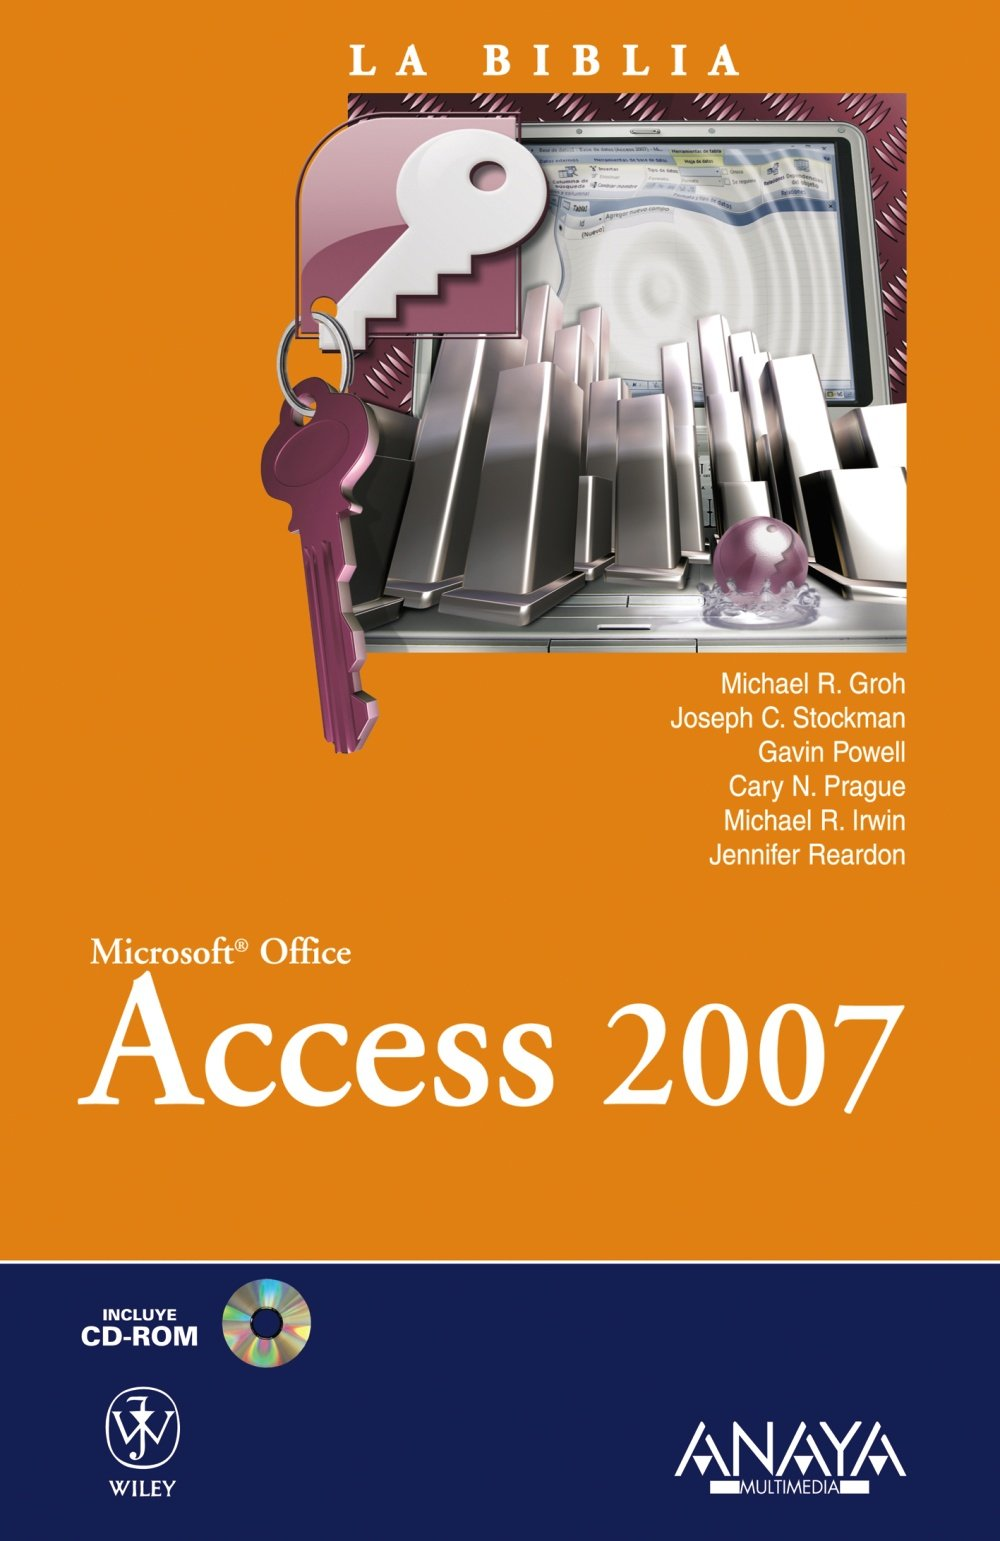 Download Access 2007 (Spanish Edition) ebook